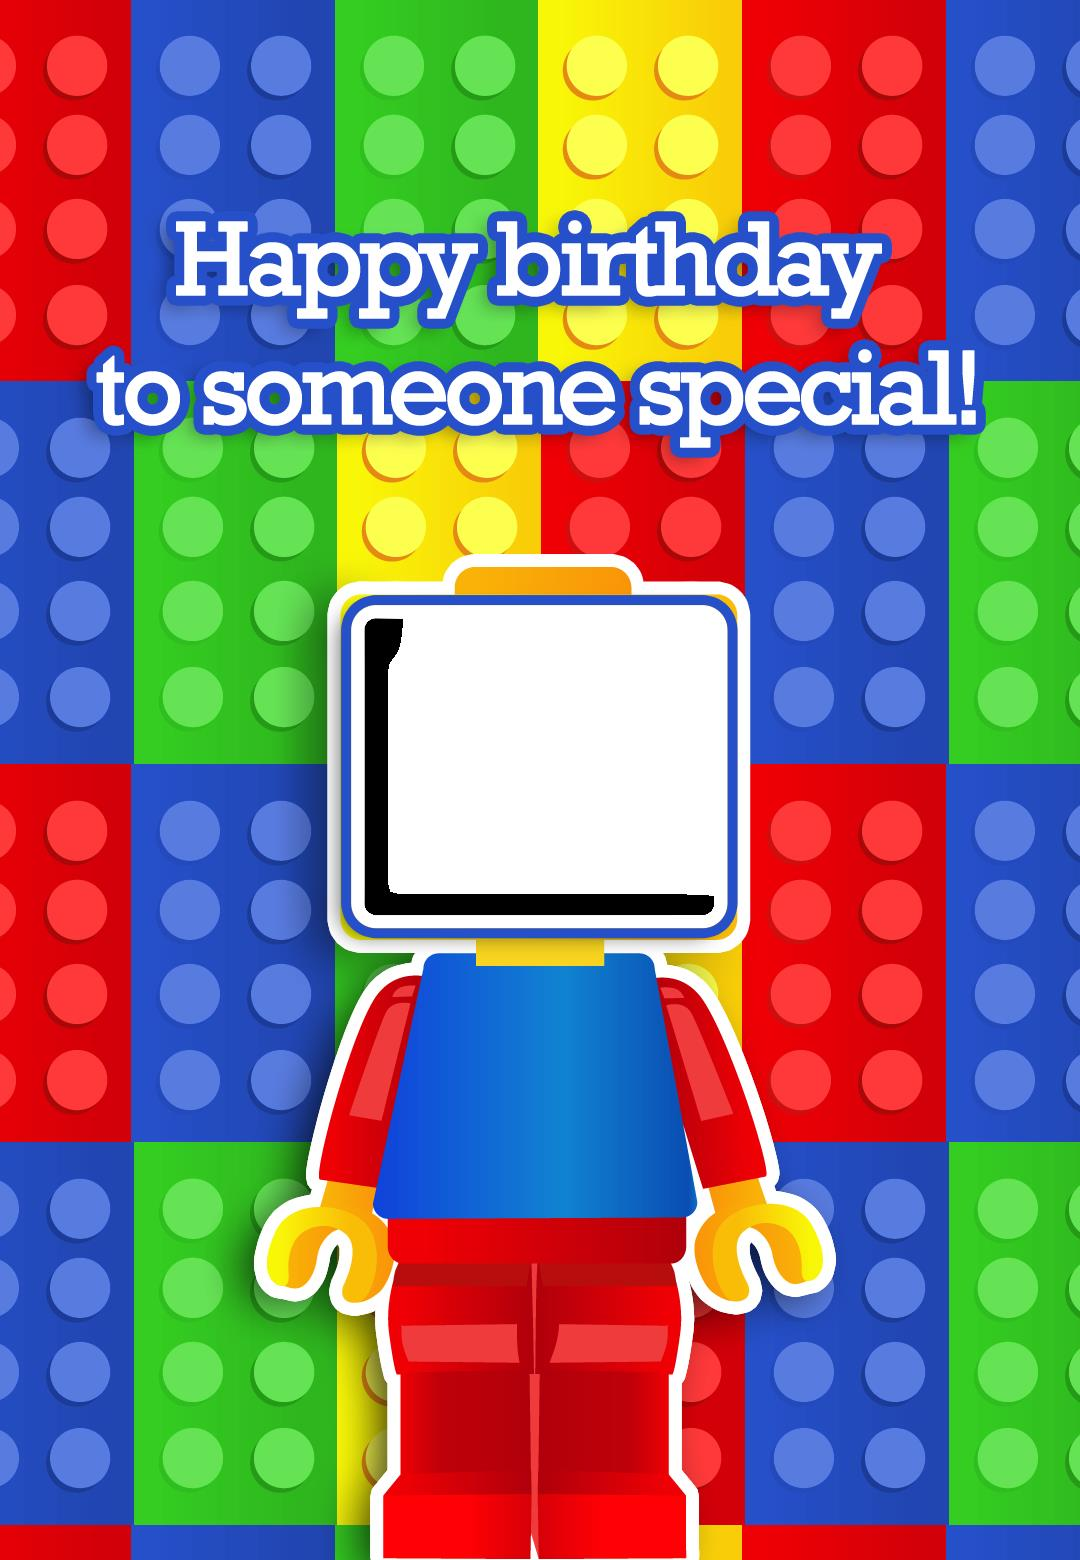 happy birthday lego card printable ; d4121253ea976fdbb0d2ad2aff4be073